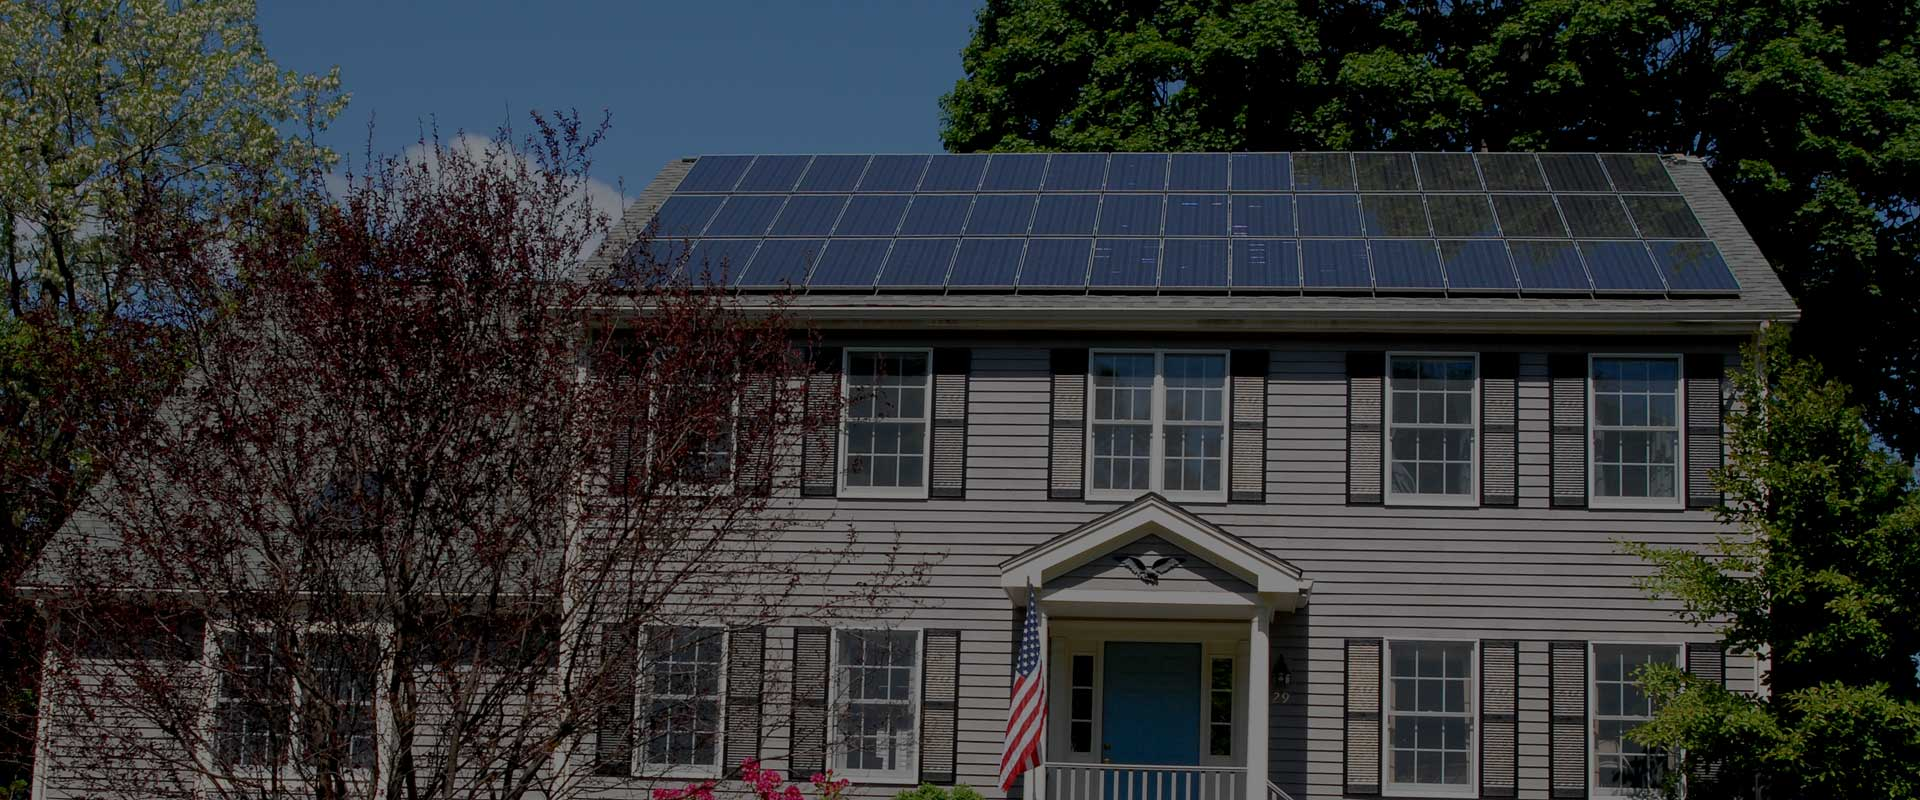 Don't Let Another Season Go By Without an Energy Efficient Home.